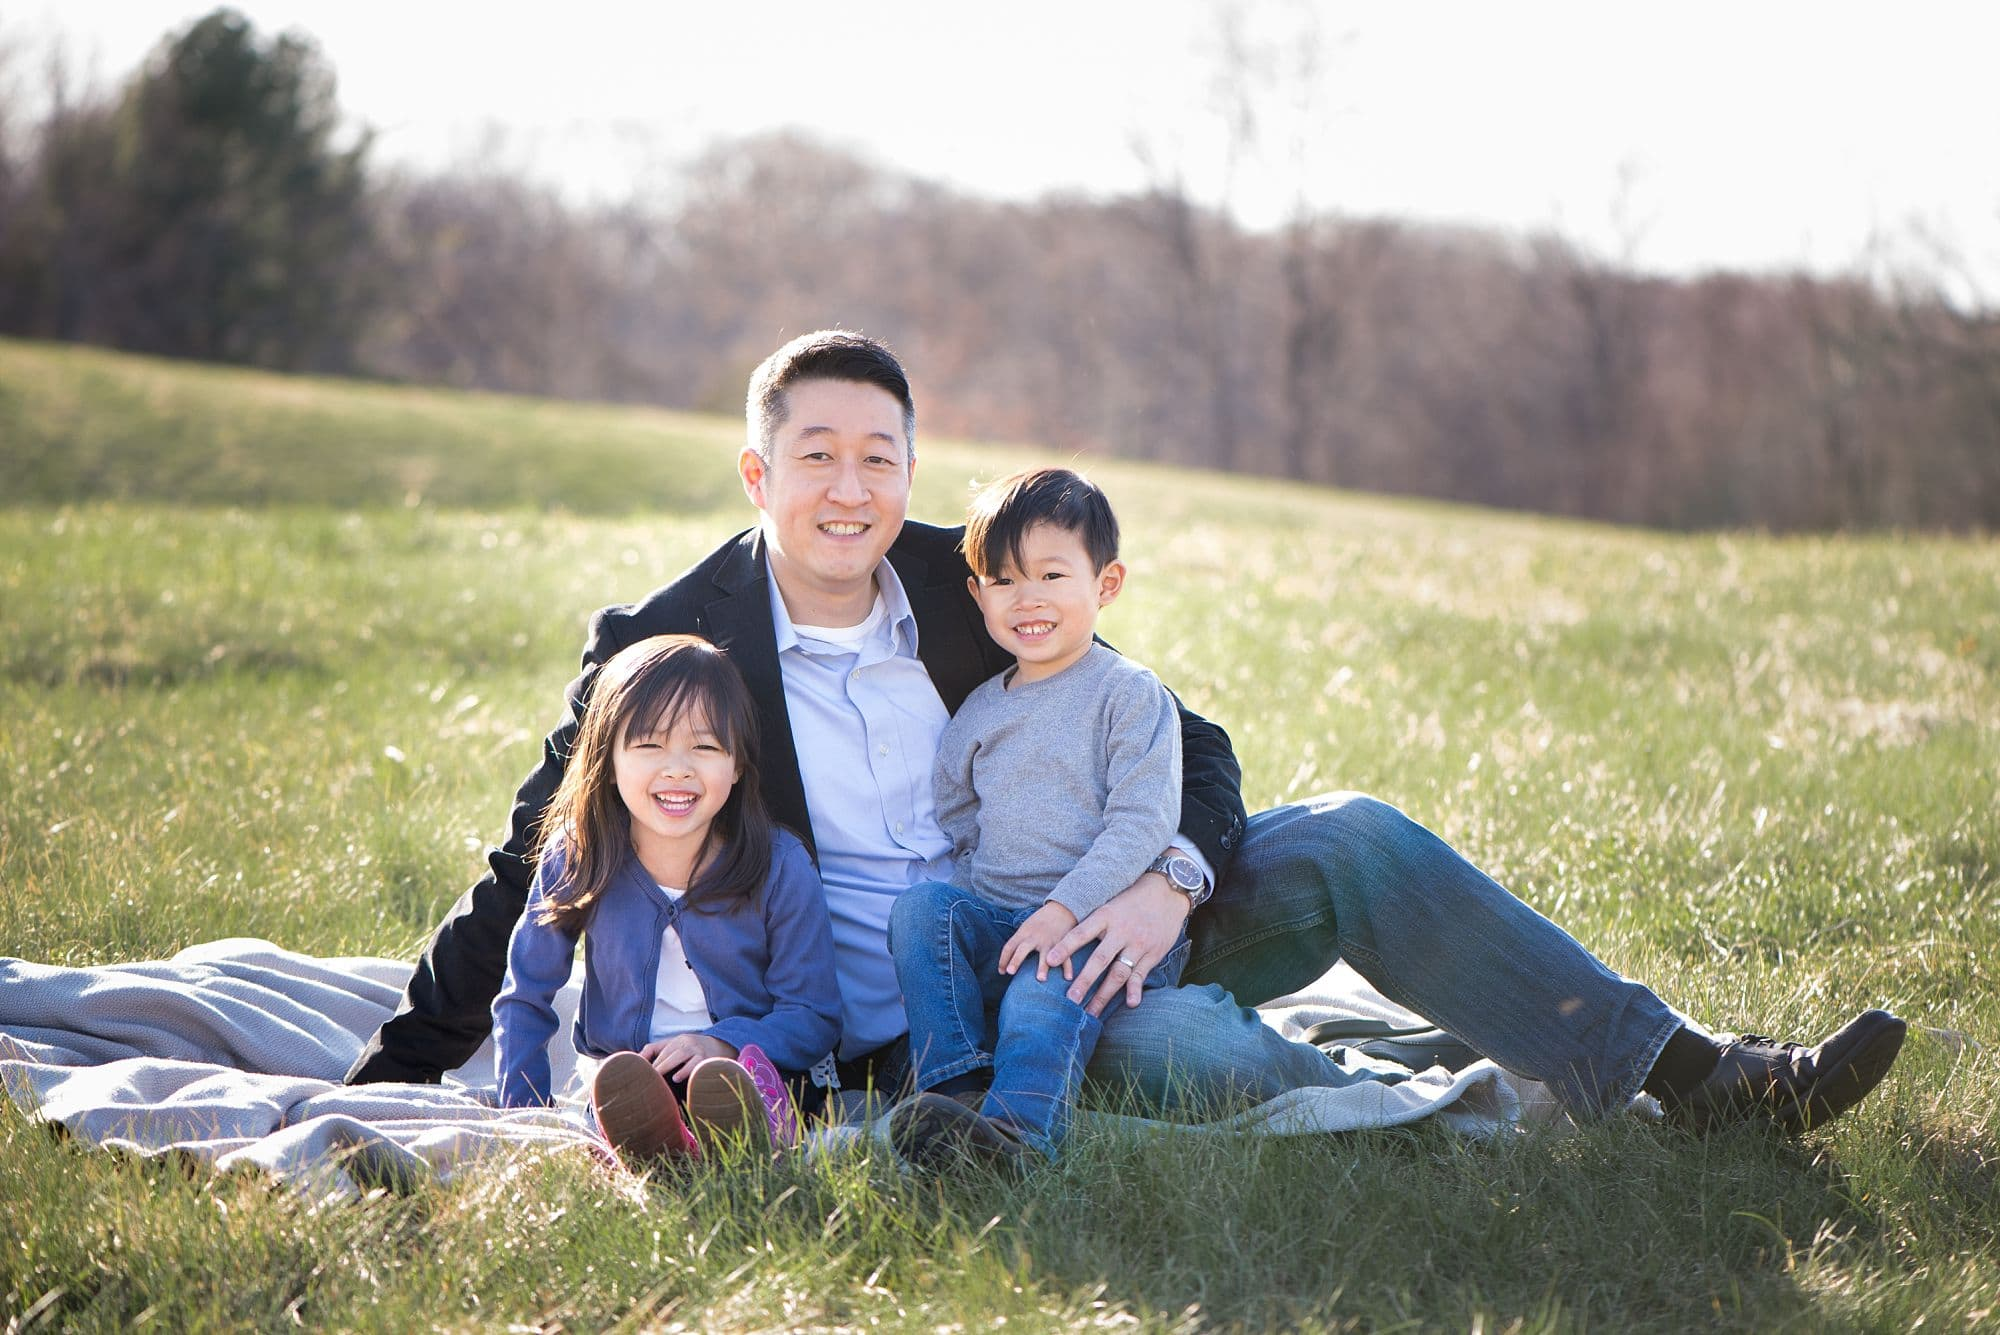 Outdoor photo of dad sitting with 2 young kids in his lap